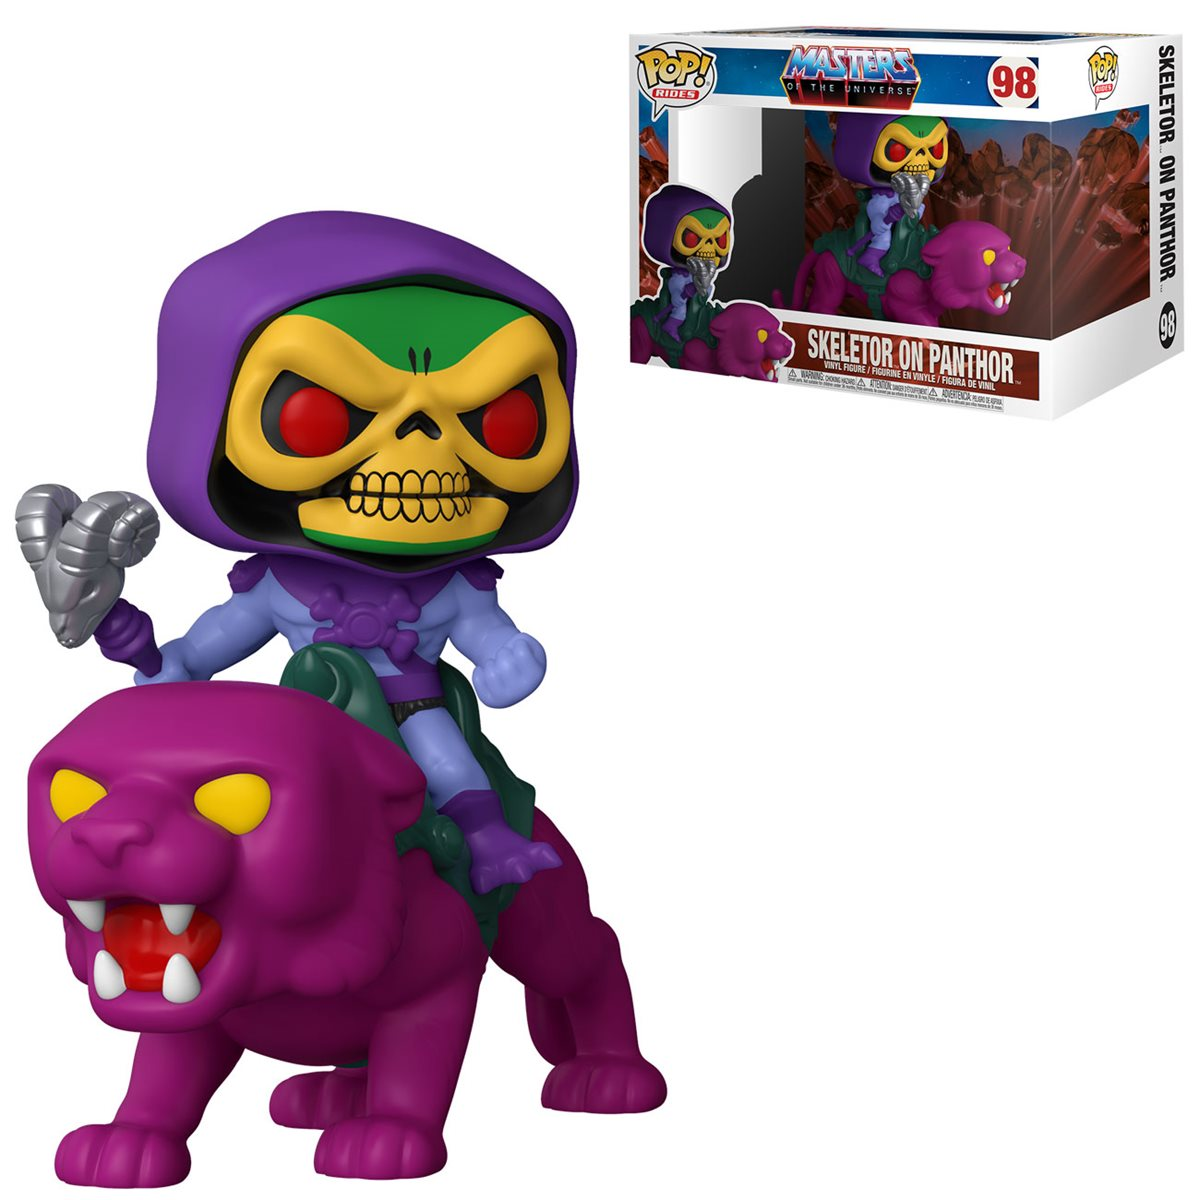 PRÉ VENDA: Funko Pop! Rides Skeletor on Panthor: Mestres do Universo (Masters of the Universe) #98  - Funko